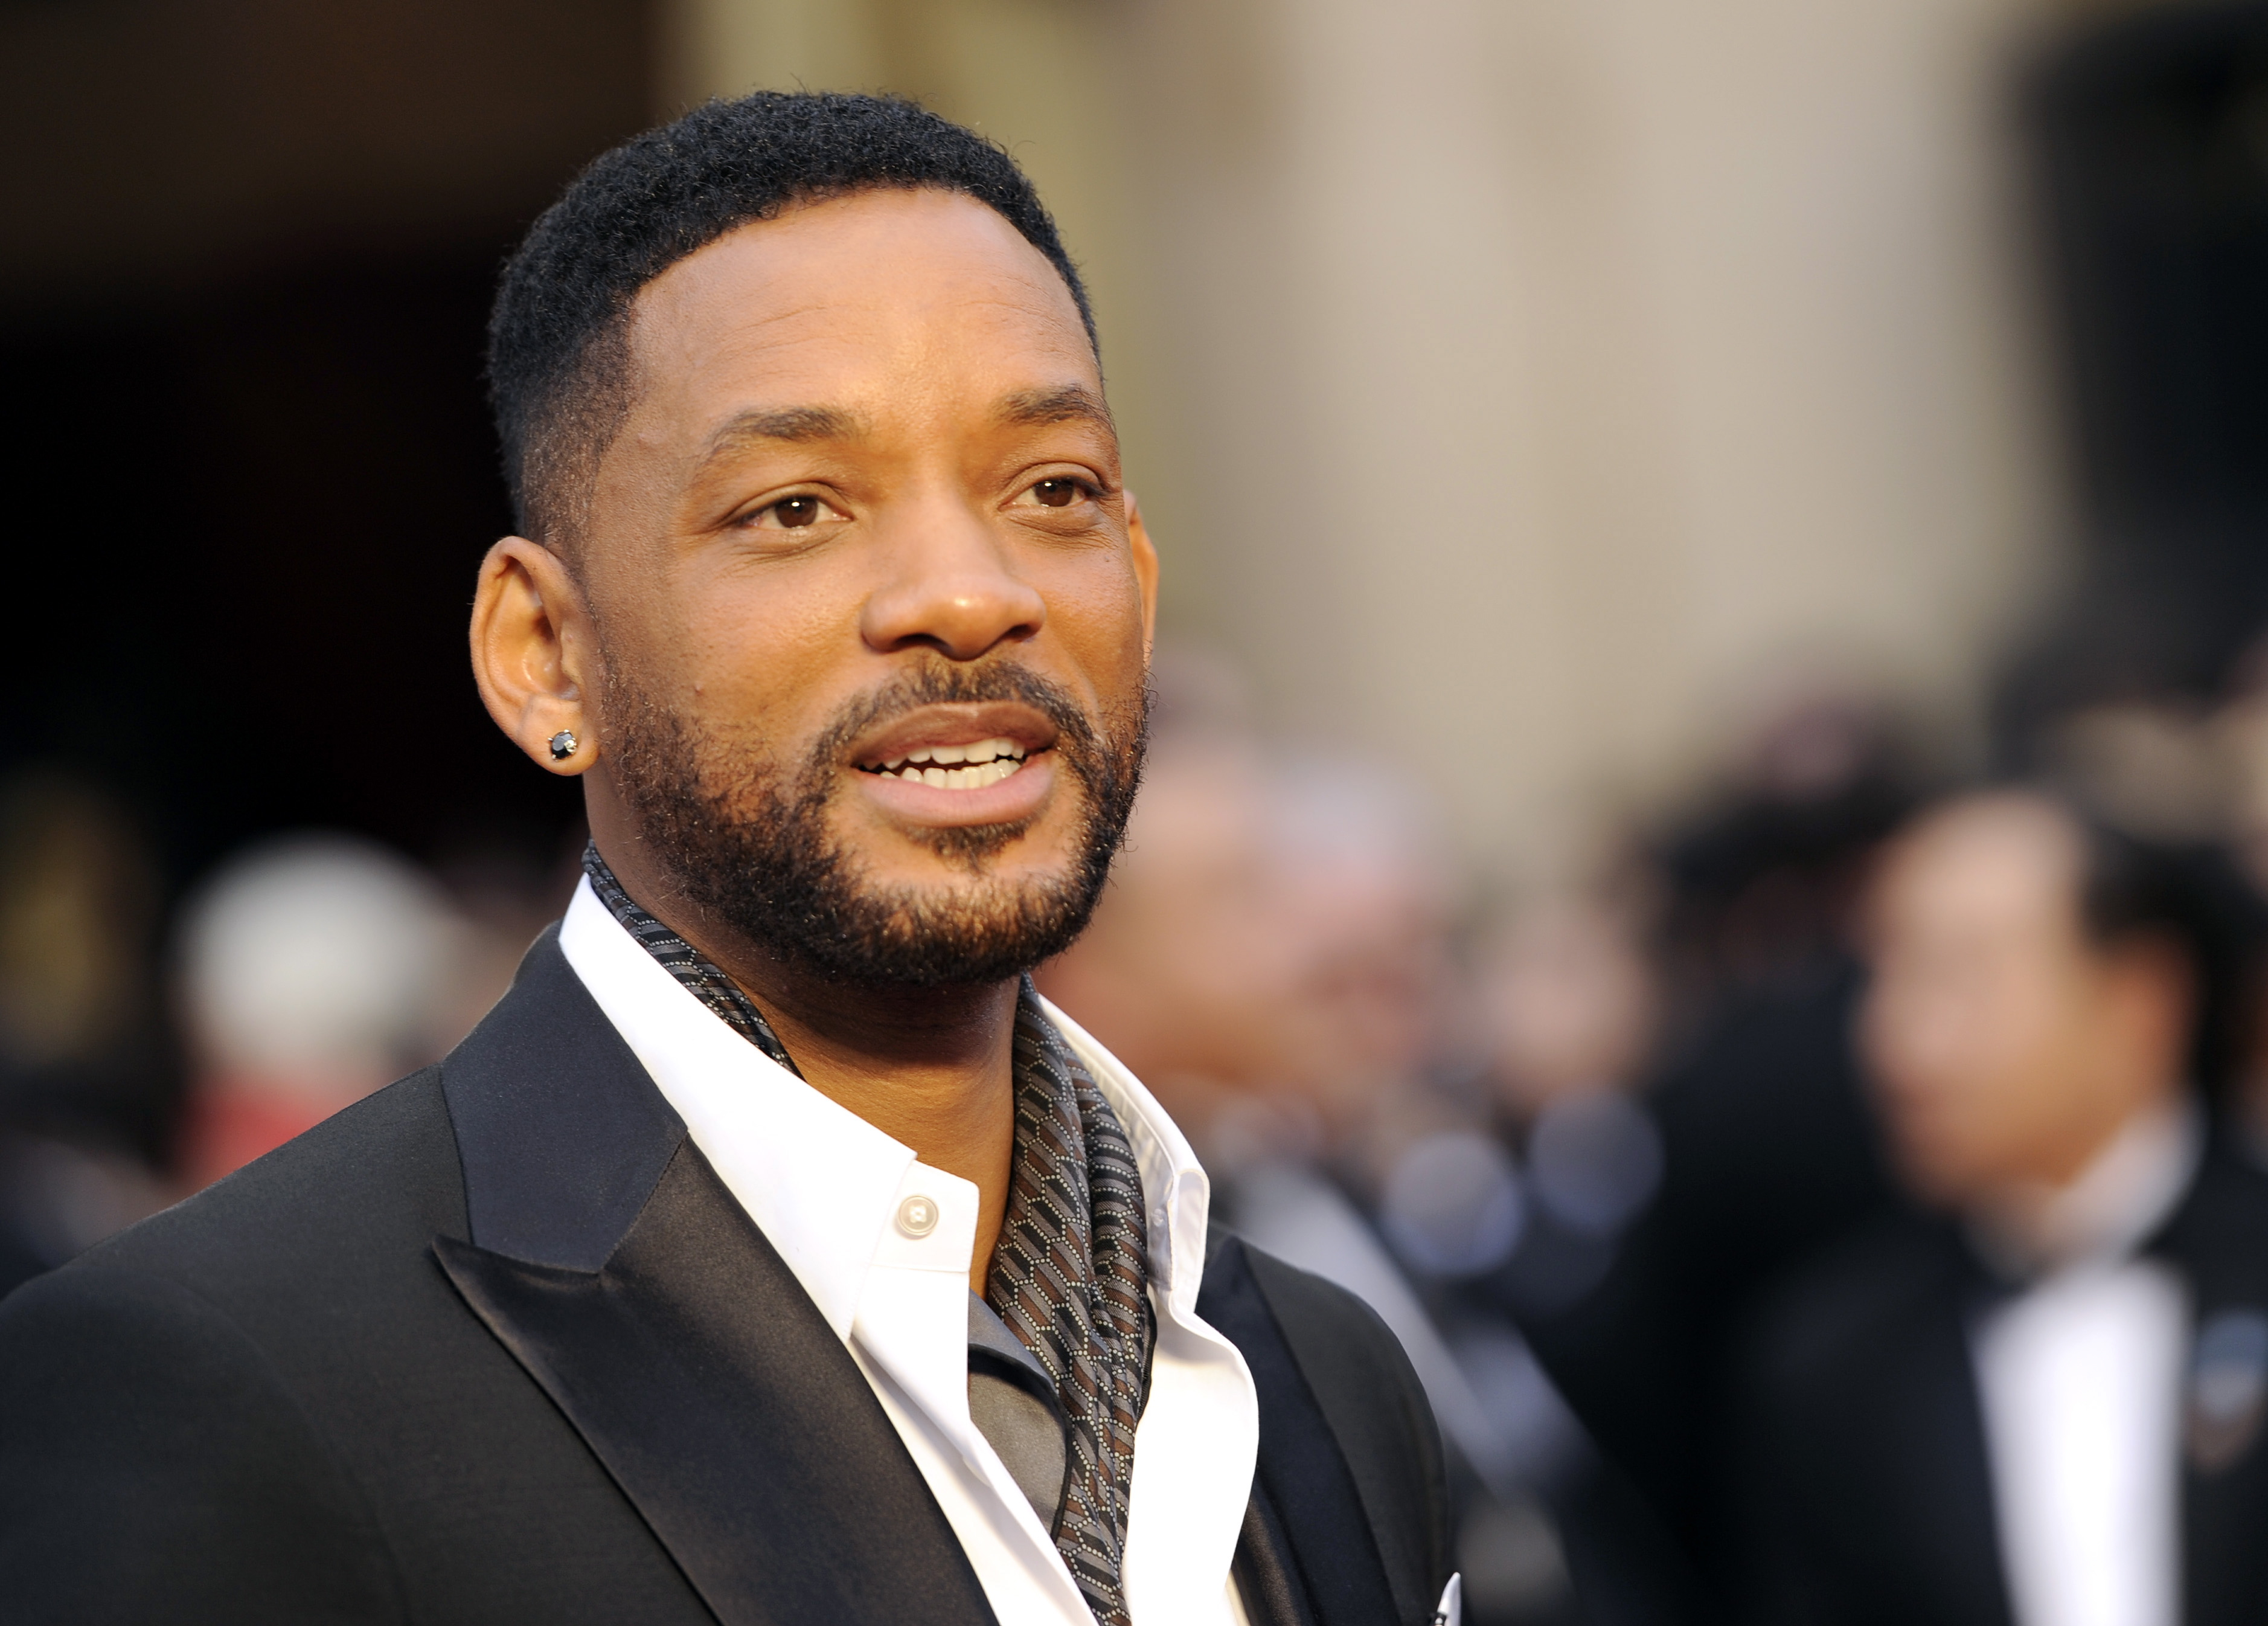 Will smith Wallpapers for iphone mobile